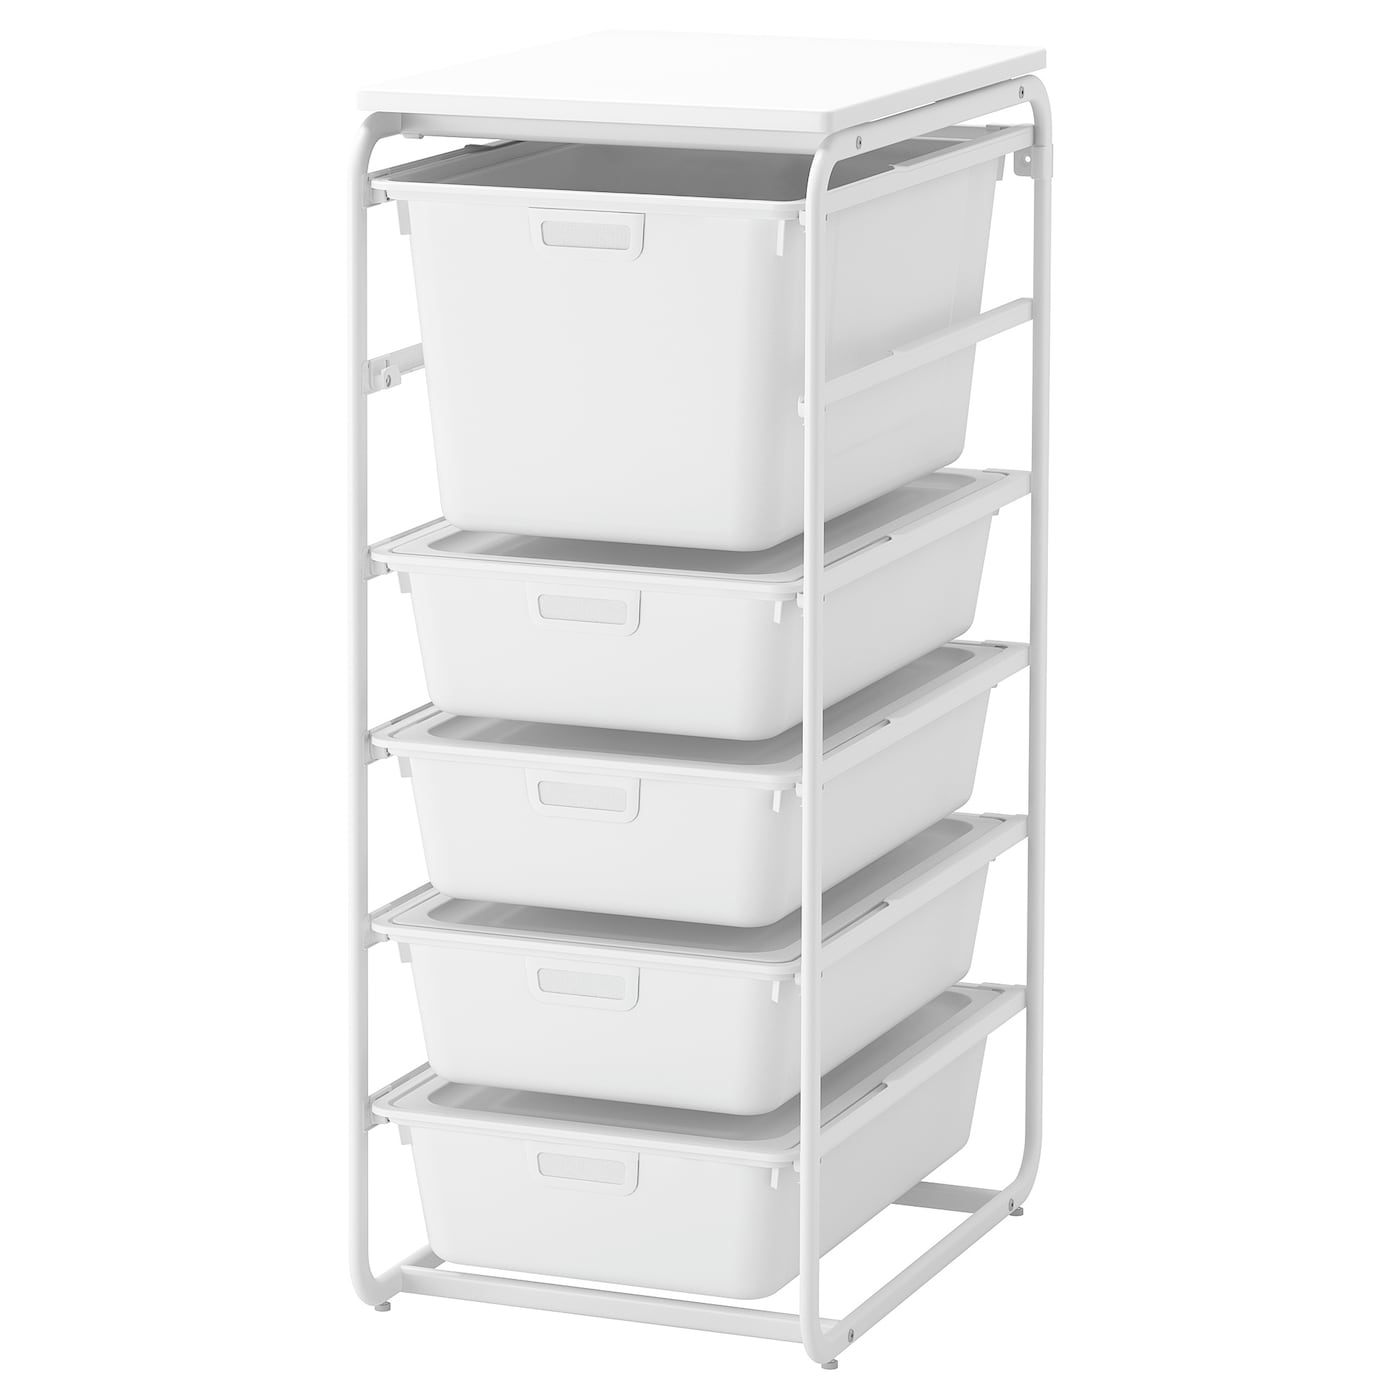 IKEA ALGOT frame/5 boxes/top shelf Can also be used in bathrooms and other damp areas indoors.